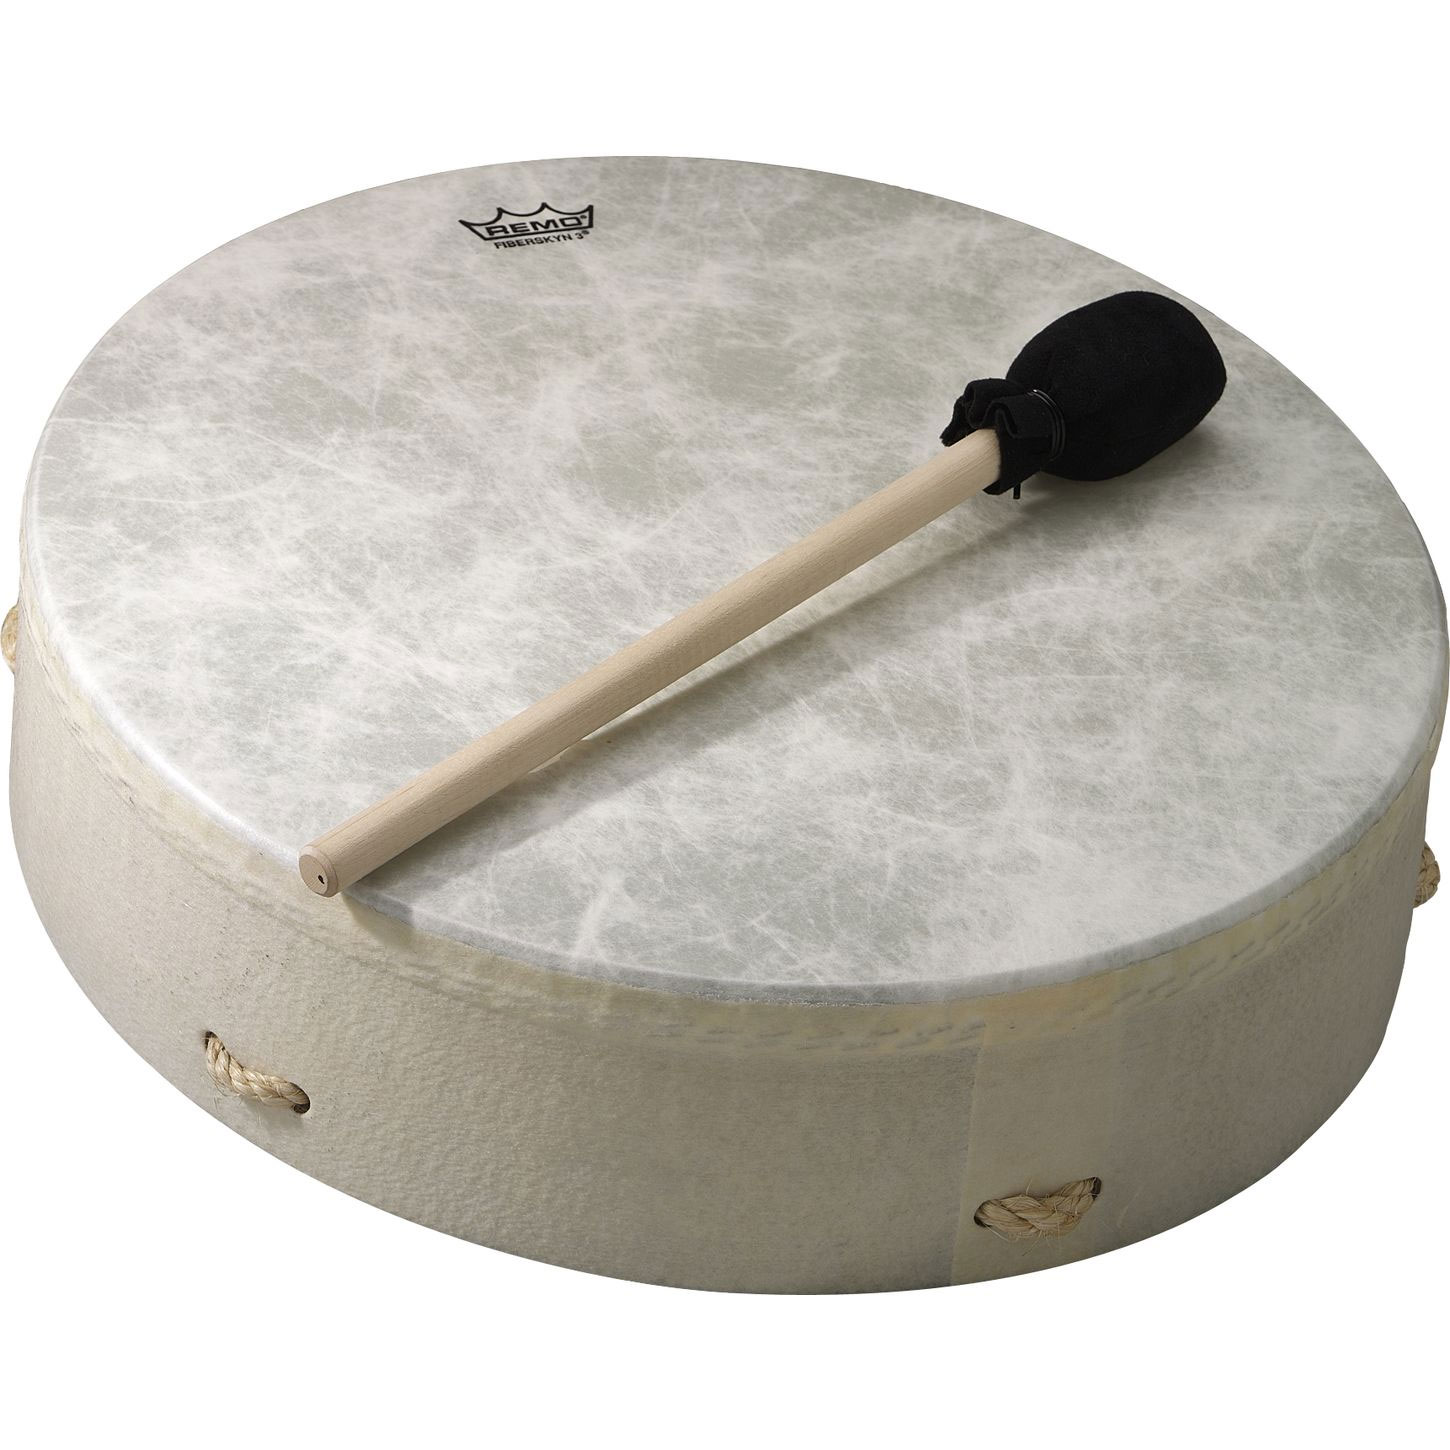 "Remo 3.5"" x 14"" Buffalo Drum with Mallet"